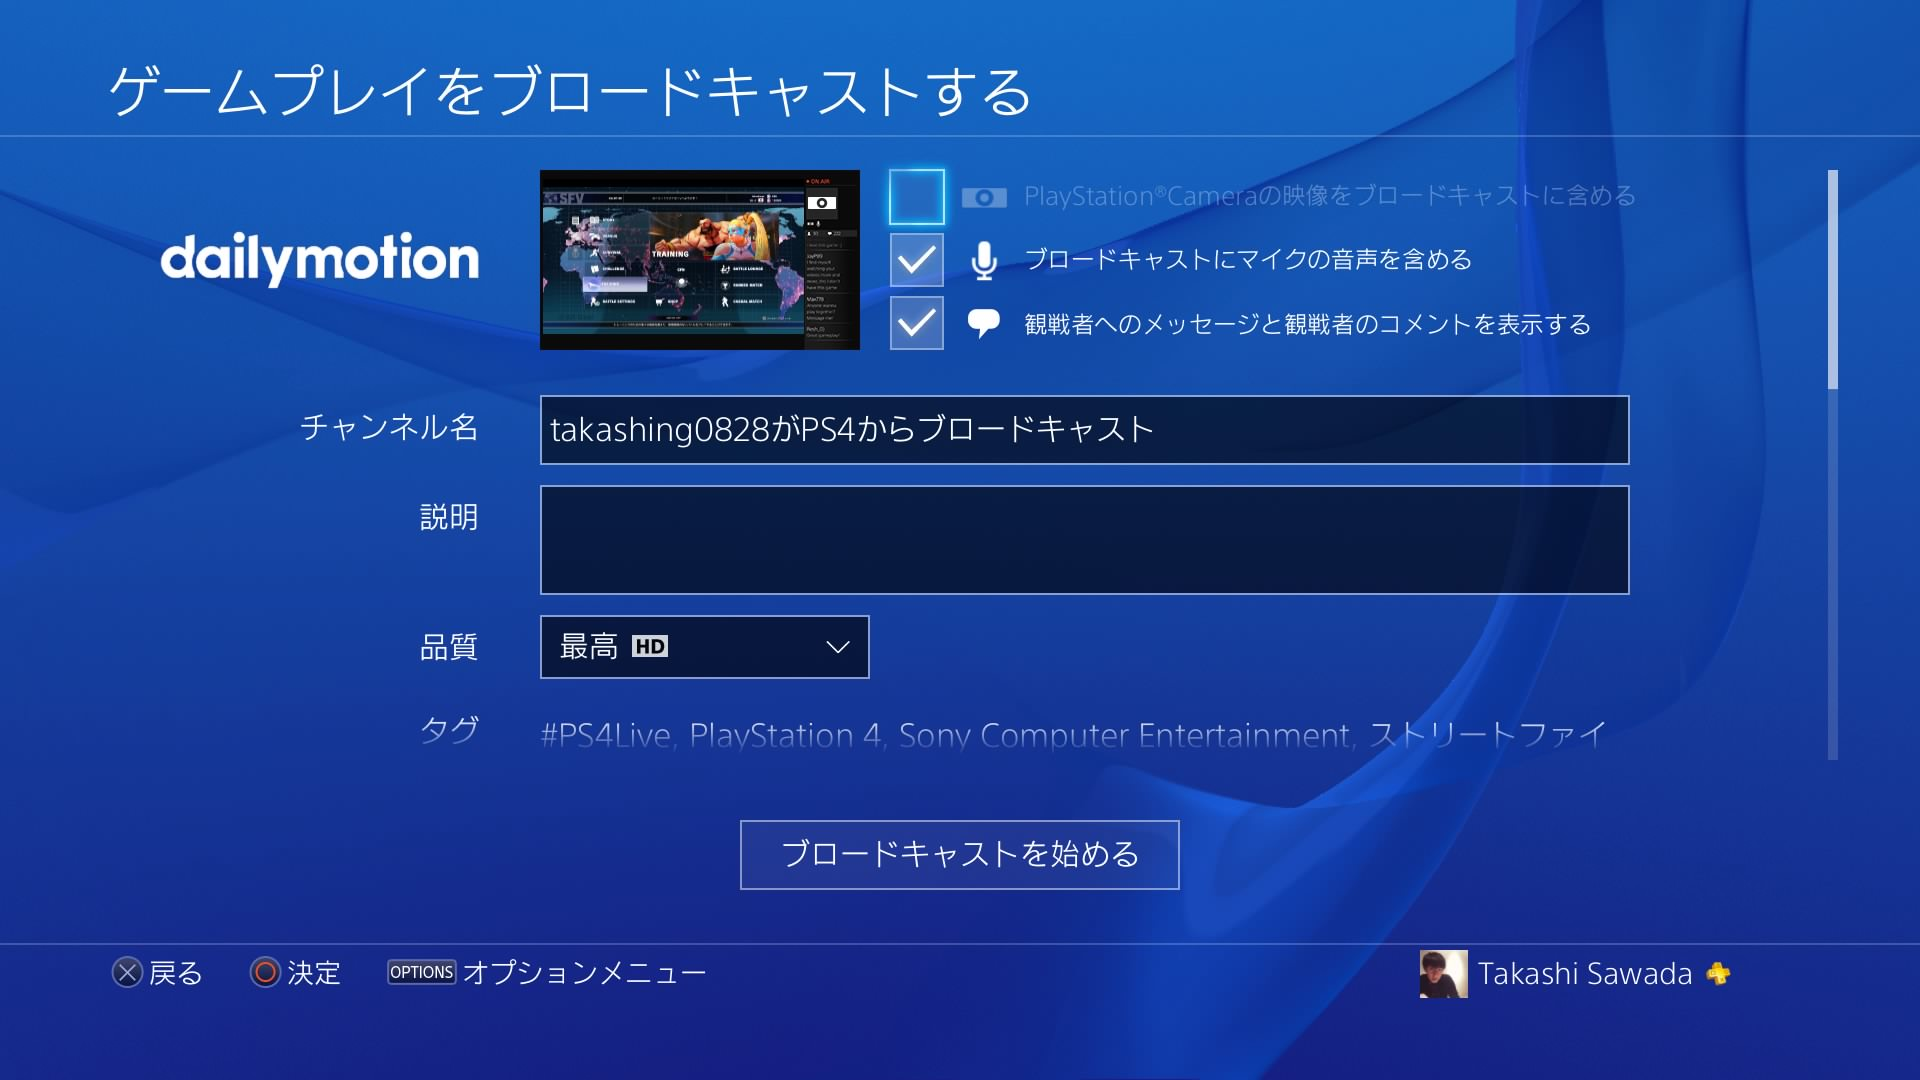 How to broadcast game playing by dailymotion from playstation 4 3